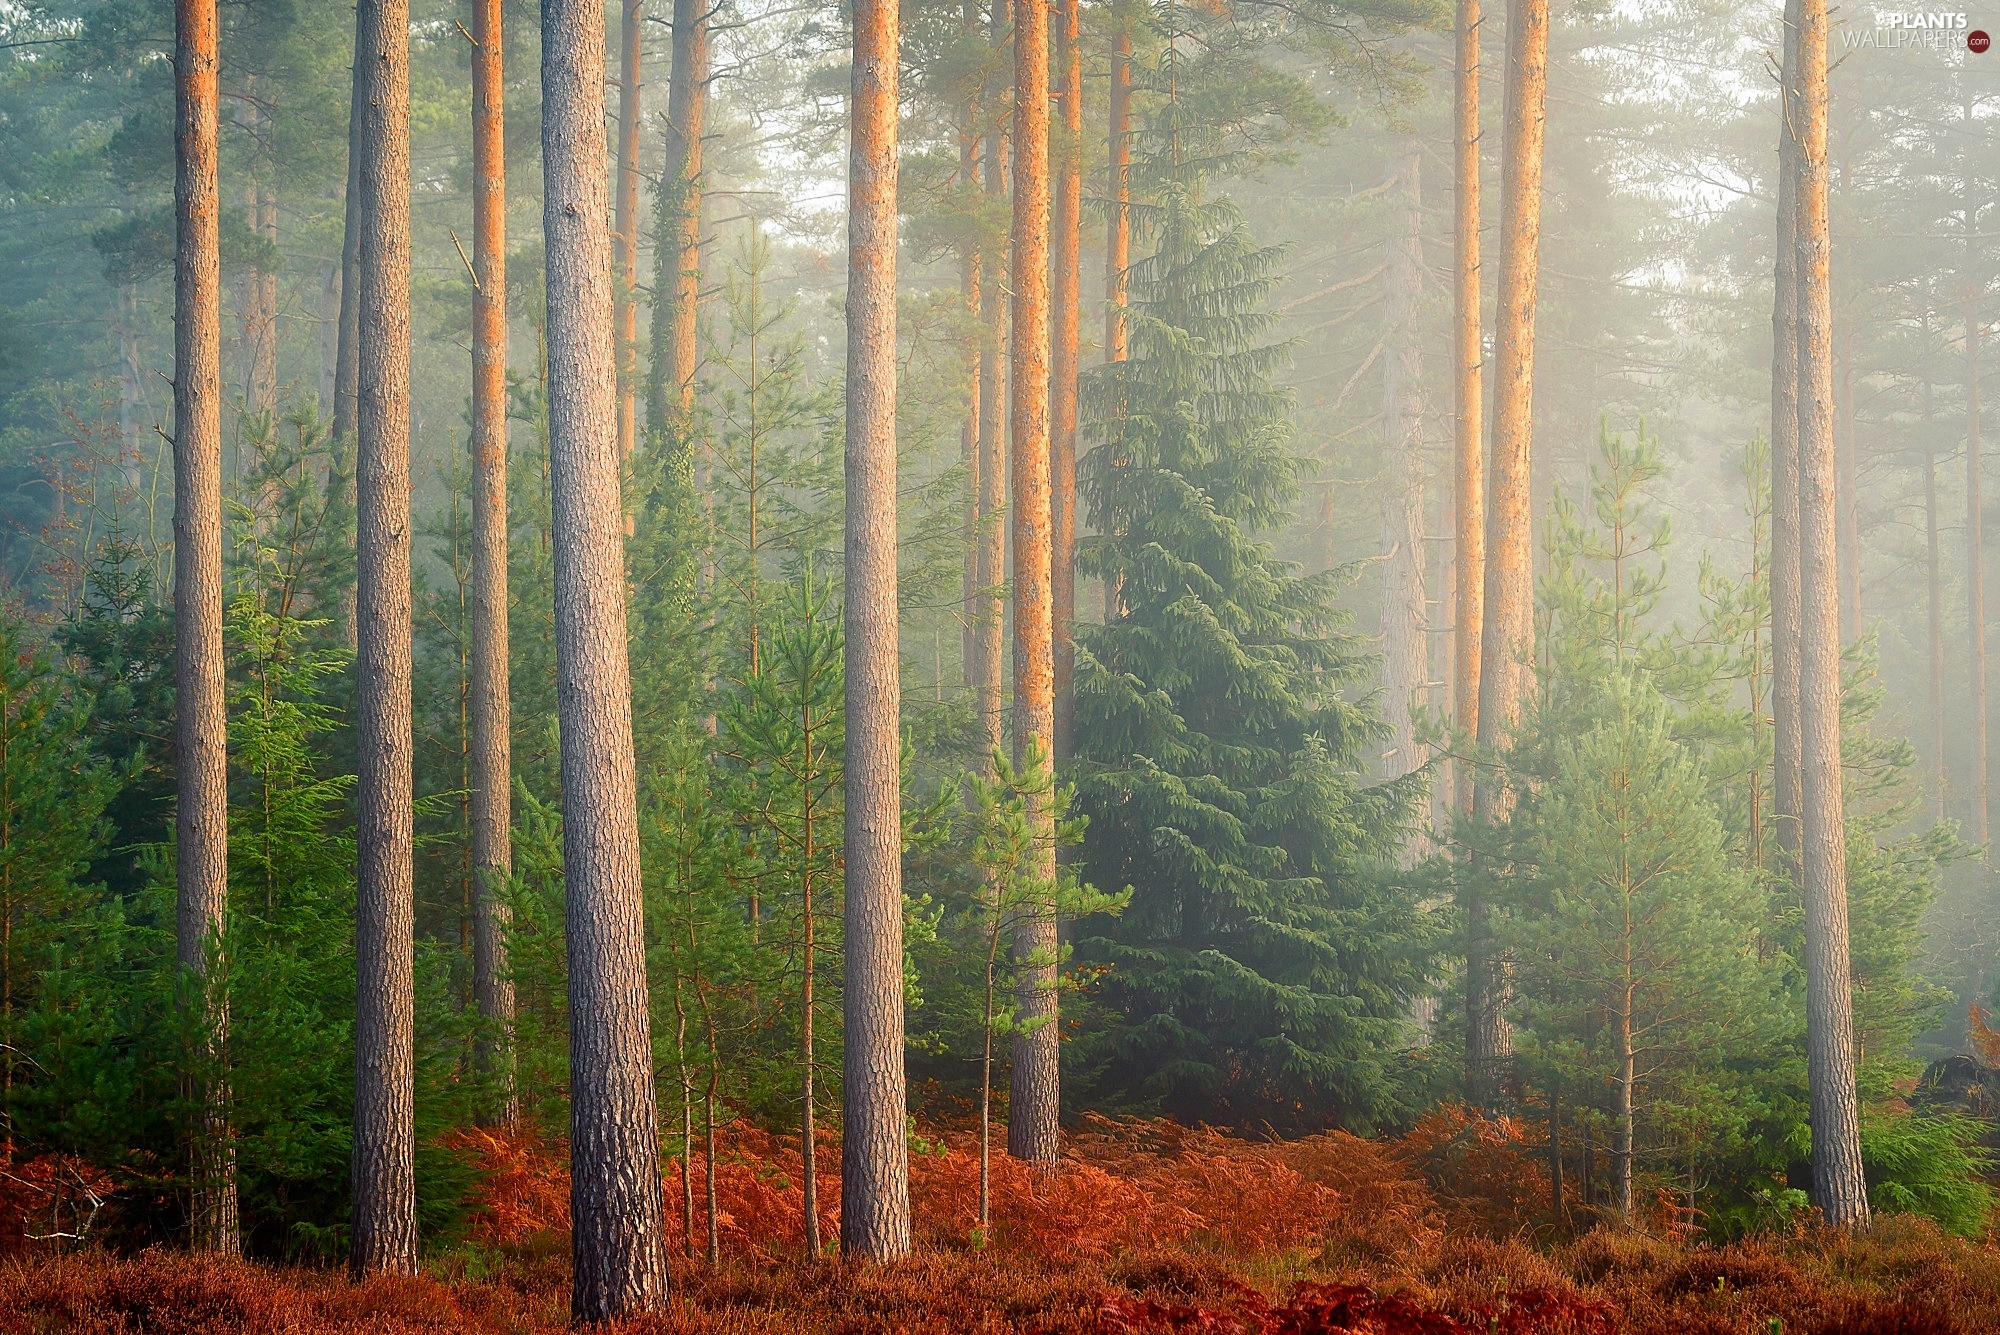 morning, trees, dry, viewes, forest, Fog, fern